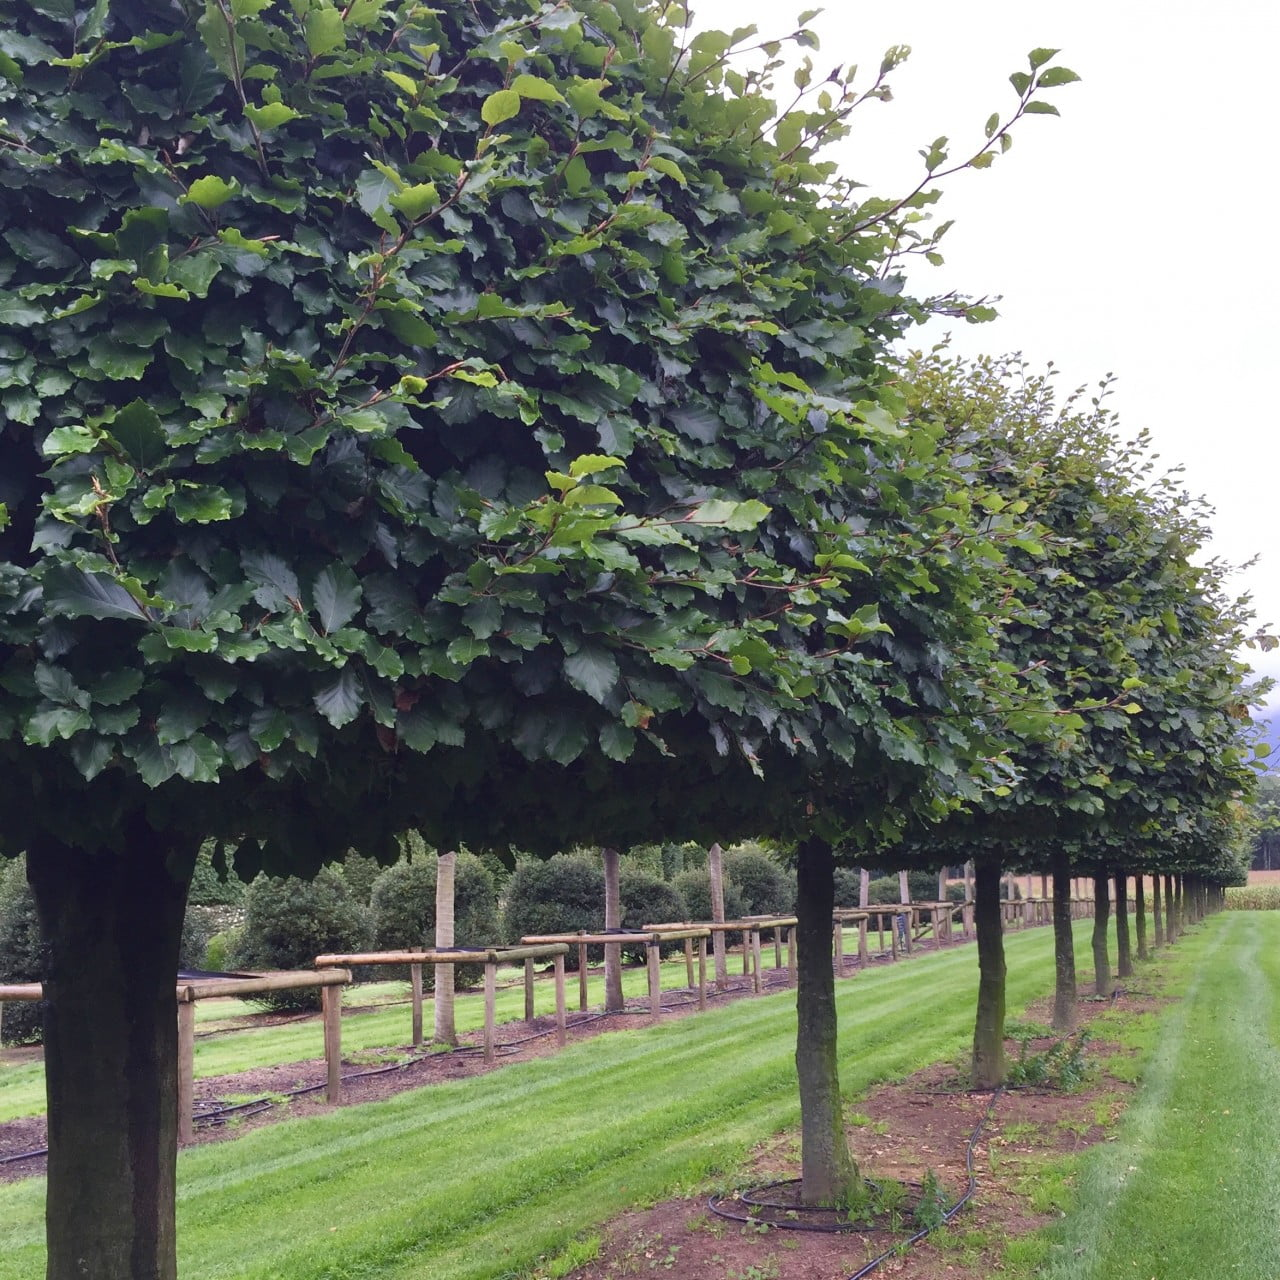 This are beautiful domed beech trees at the nursery in Belgium. Saw these on a shopping trip for my clients